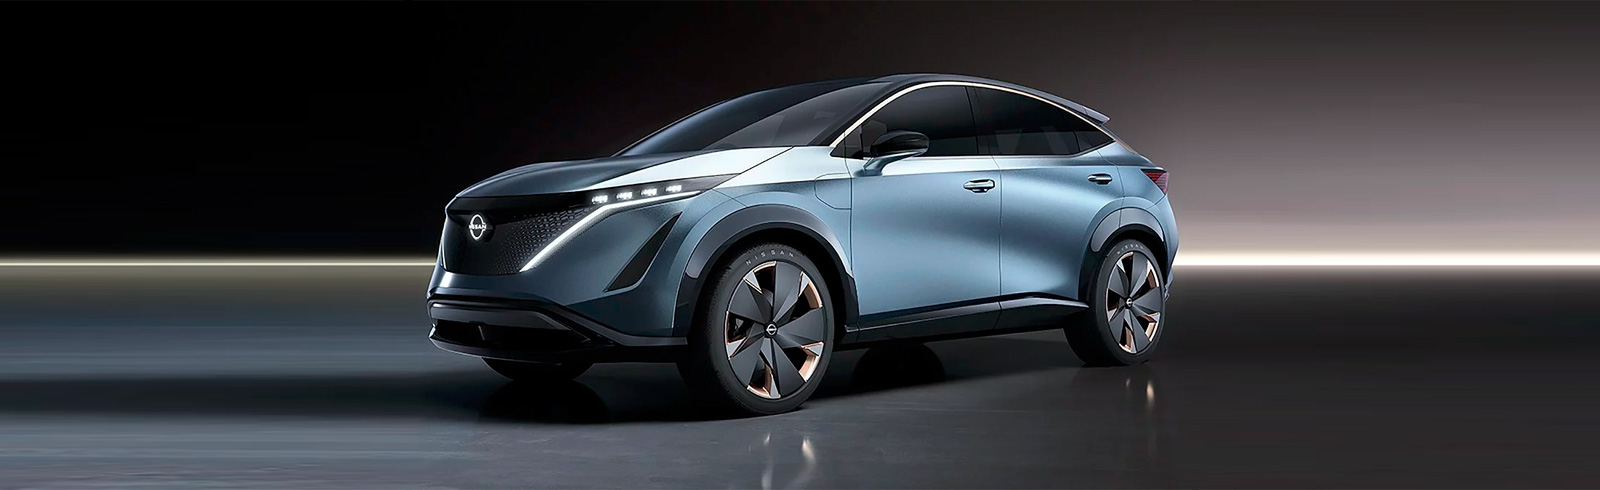 Nissan Ariya Concept goes official, will be the base of a production vehicle